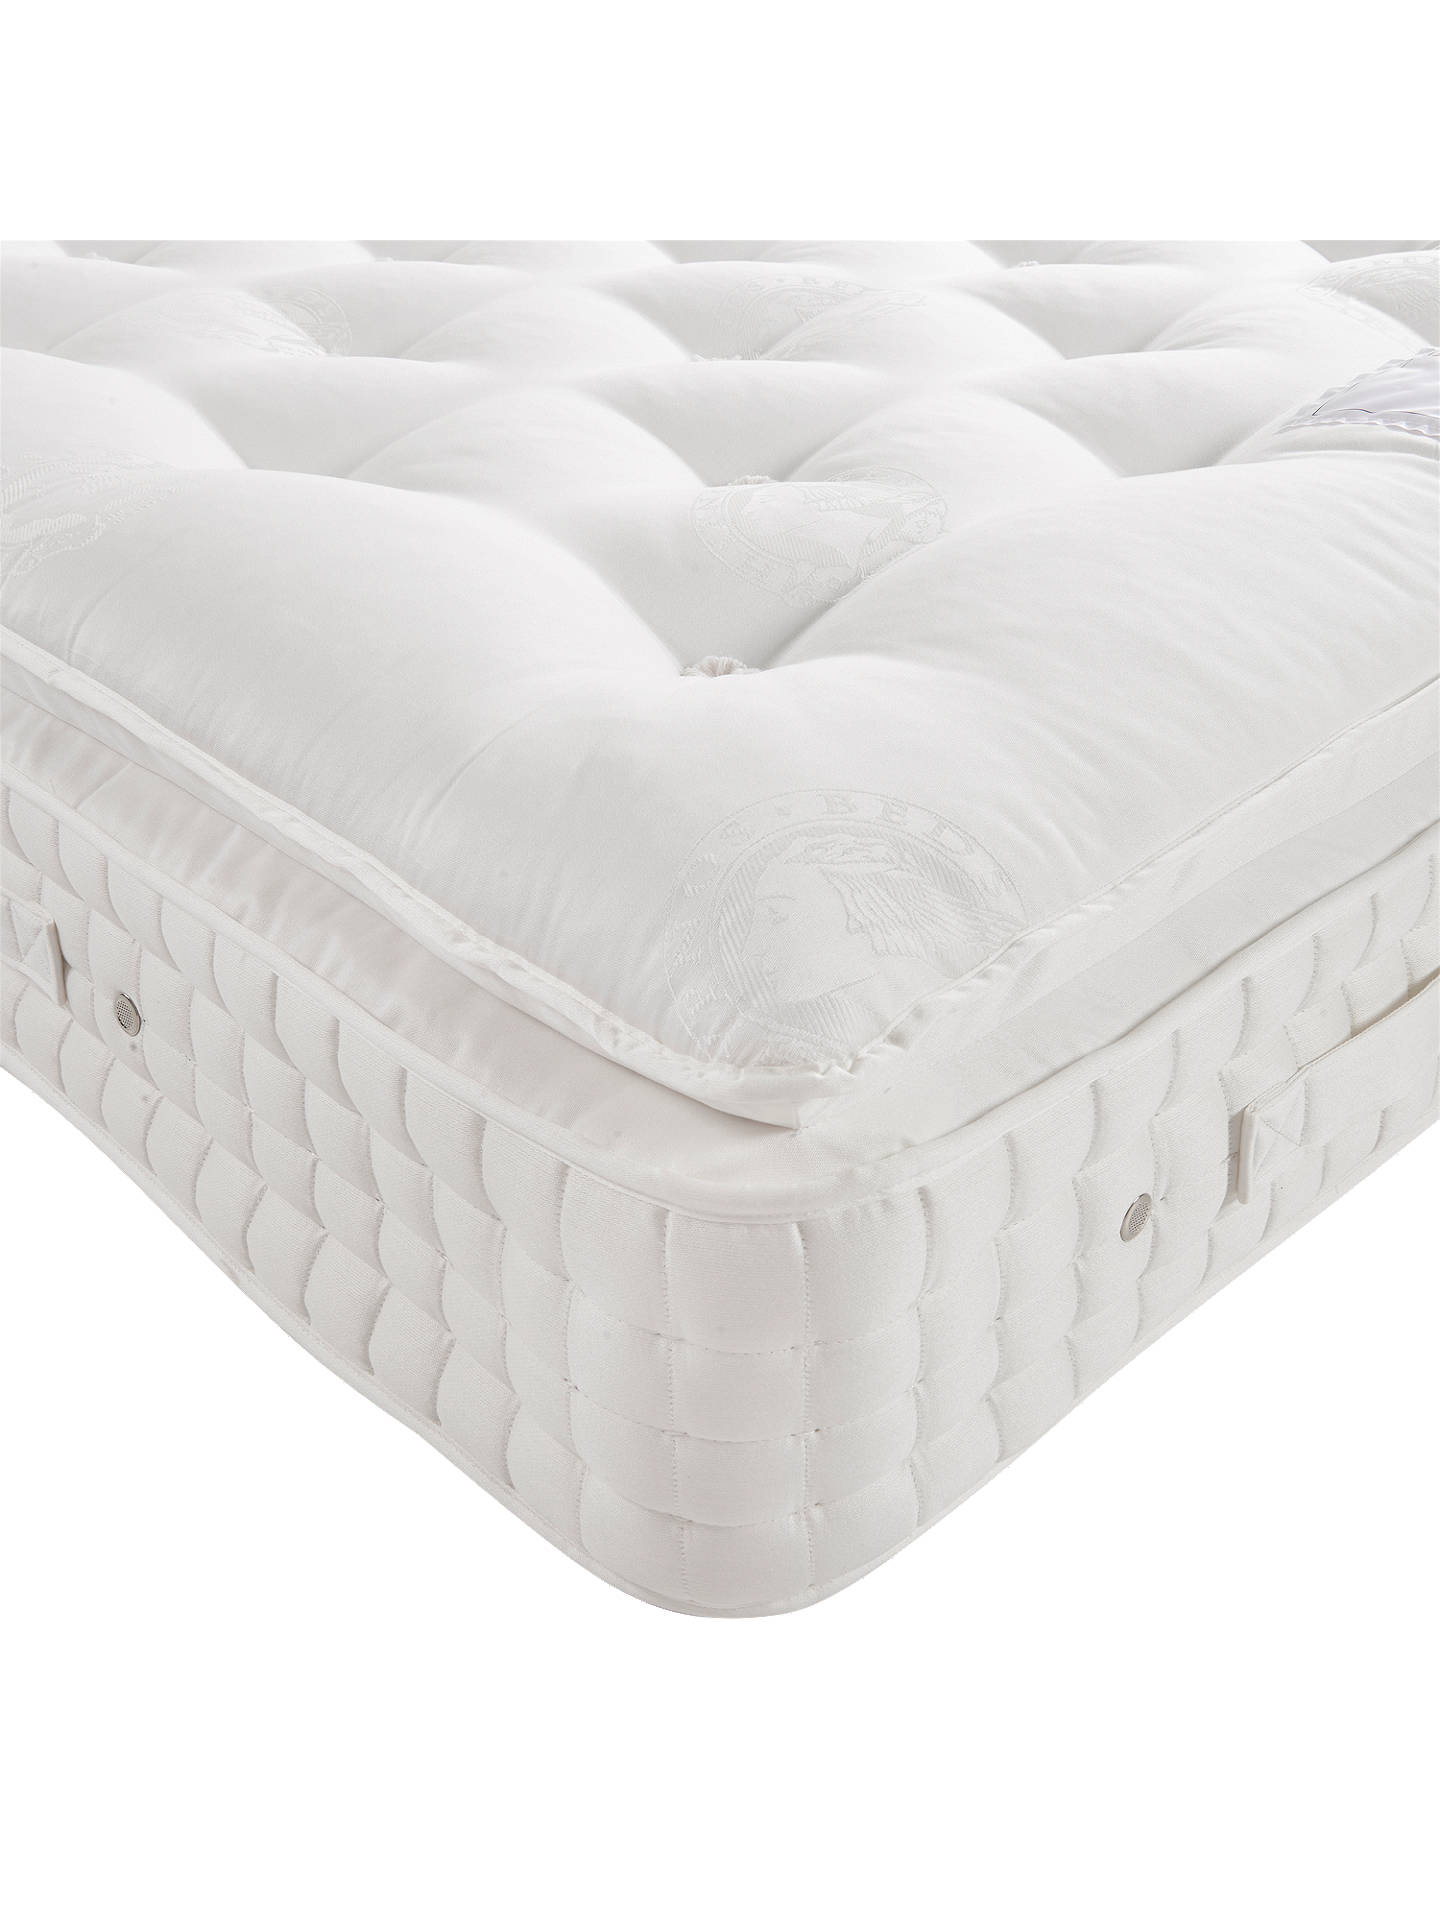 sneakers for cheap 02ca8 dca60 Hypnos Sublime Pillowtop Pocket Spring Mattress, Medium Tension, Super King  Size